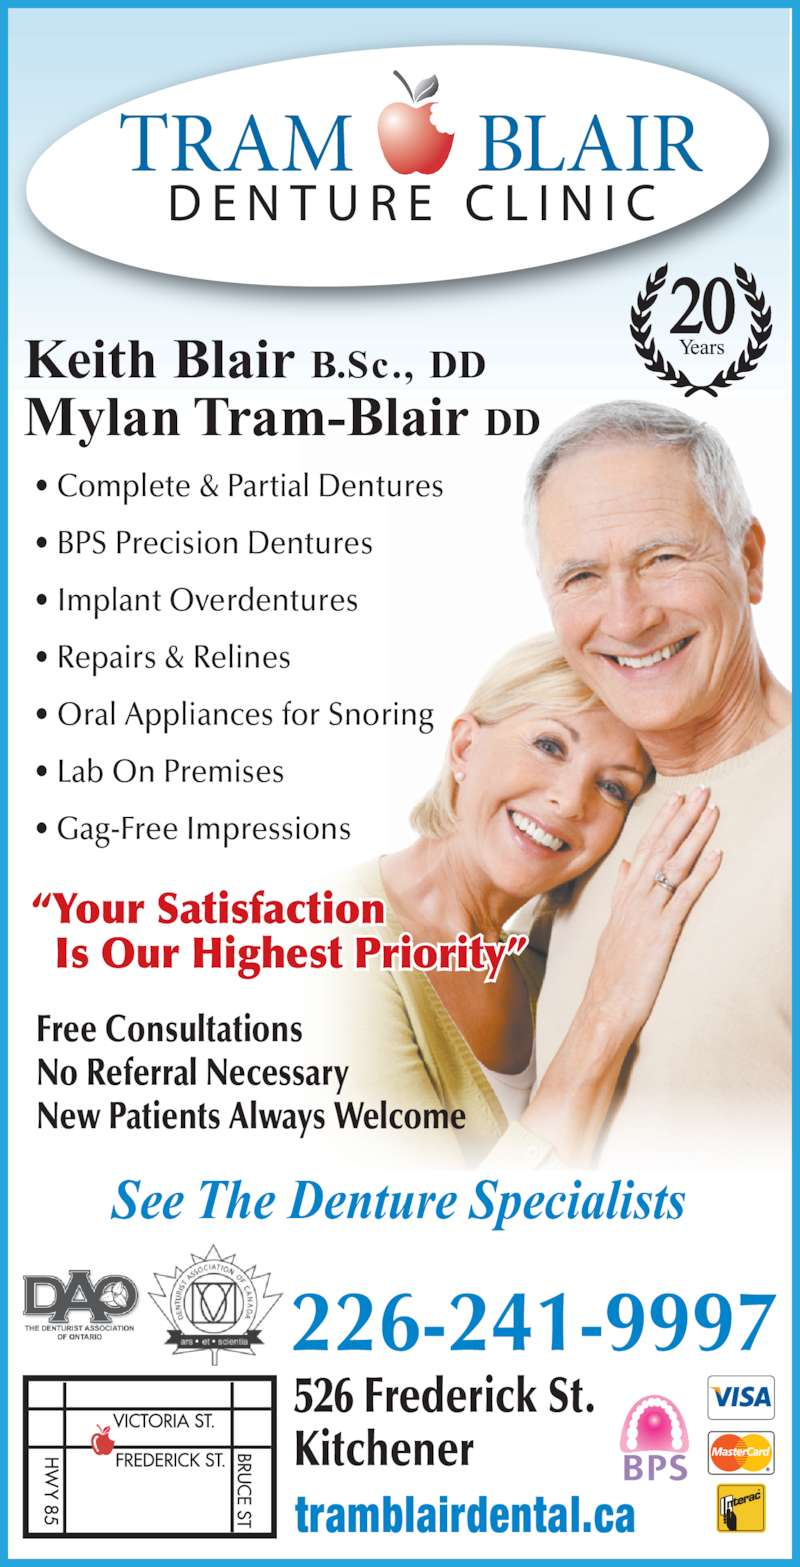 Tram-Blair Denture Clinic (2262434976) - Display Ad - Keith Blair B.Sc., DD See The Denture Specialists Mylan Tram-Blair DD 226-241-9997 526 Frederick St. Kitchener tramblairdental.ca ? Complete & Partial Dentures ? BPS Precision Dentures ? Implant Overdentures ? Repairs & Relines ? Oral Appliances for Snoring ? Lab On Premises ? Gag-Free Impressions ?Your Satisfaction   Is Our Highest Priority? Free Consultations No Referral Necessary New Patients Always Welcome 20